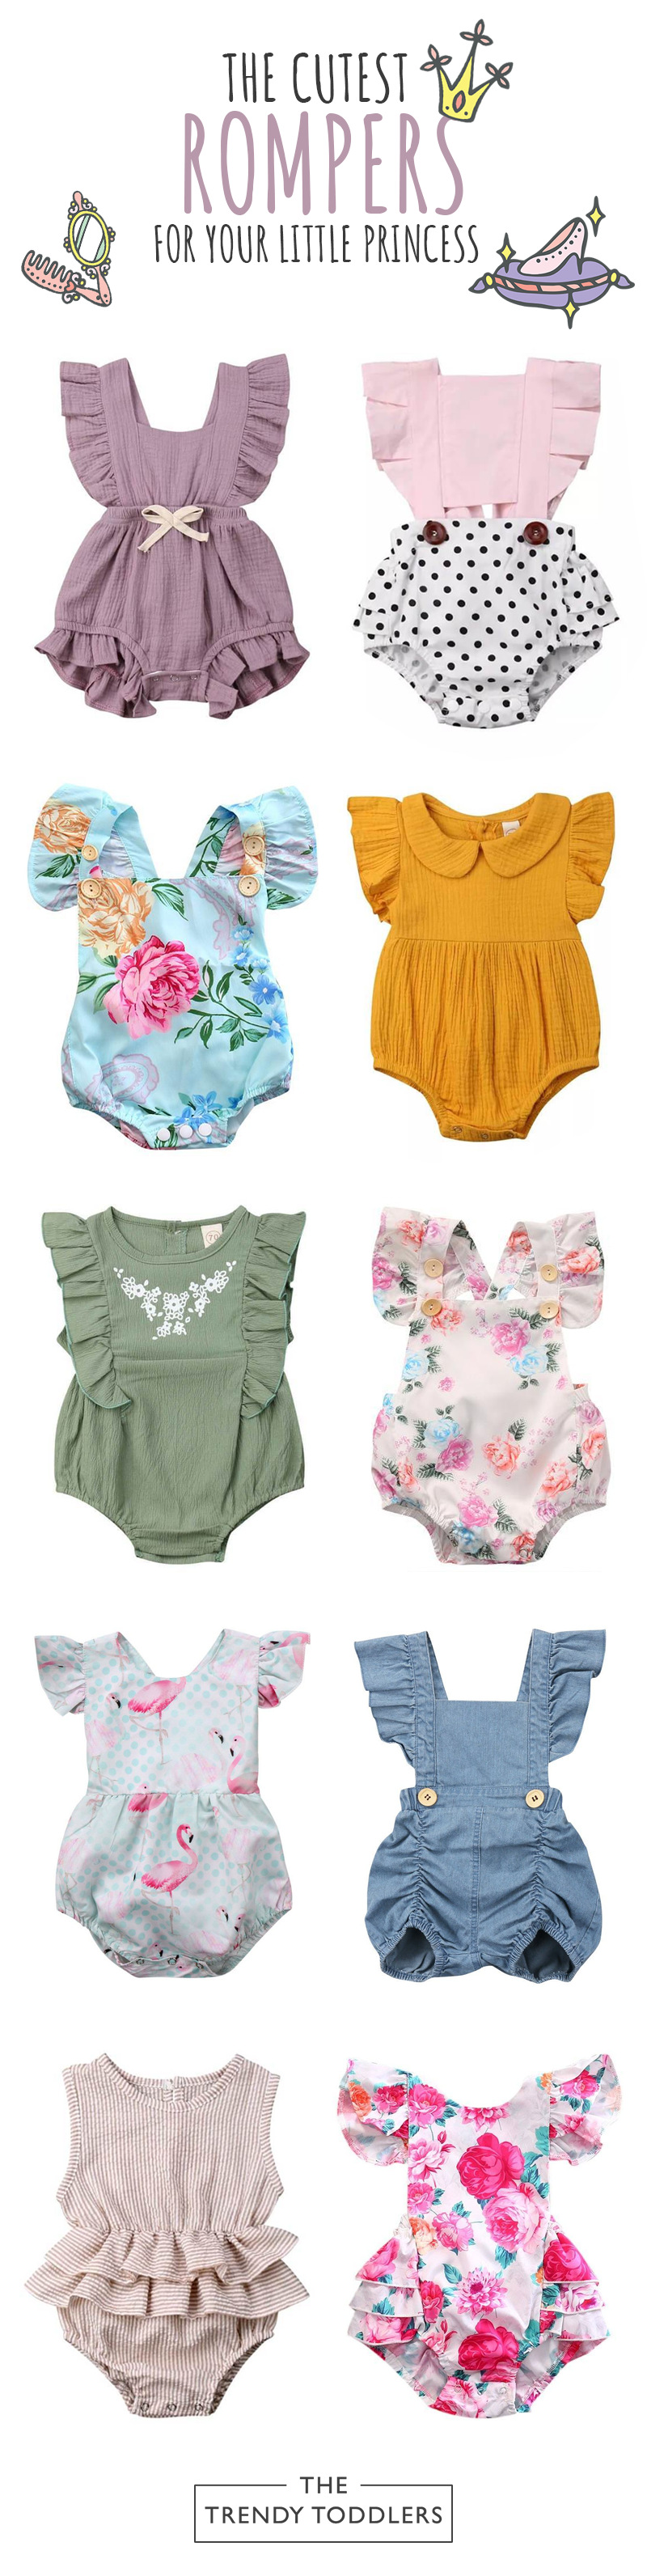 UP TO 70% OFF + FREE SHIPPING! Shop our entire collection of baby girl beautiful... 2